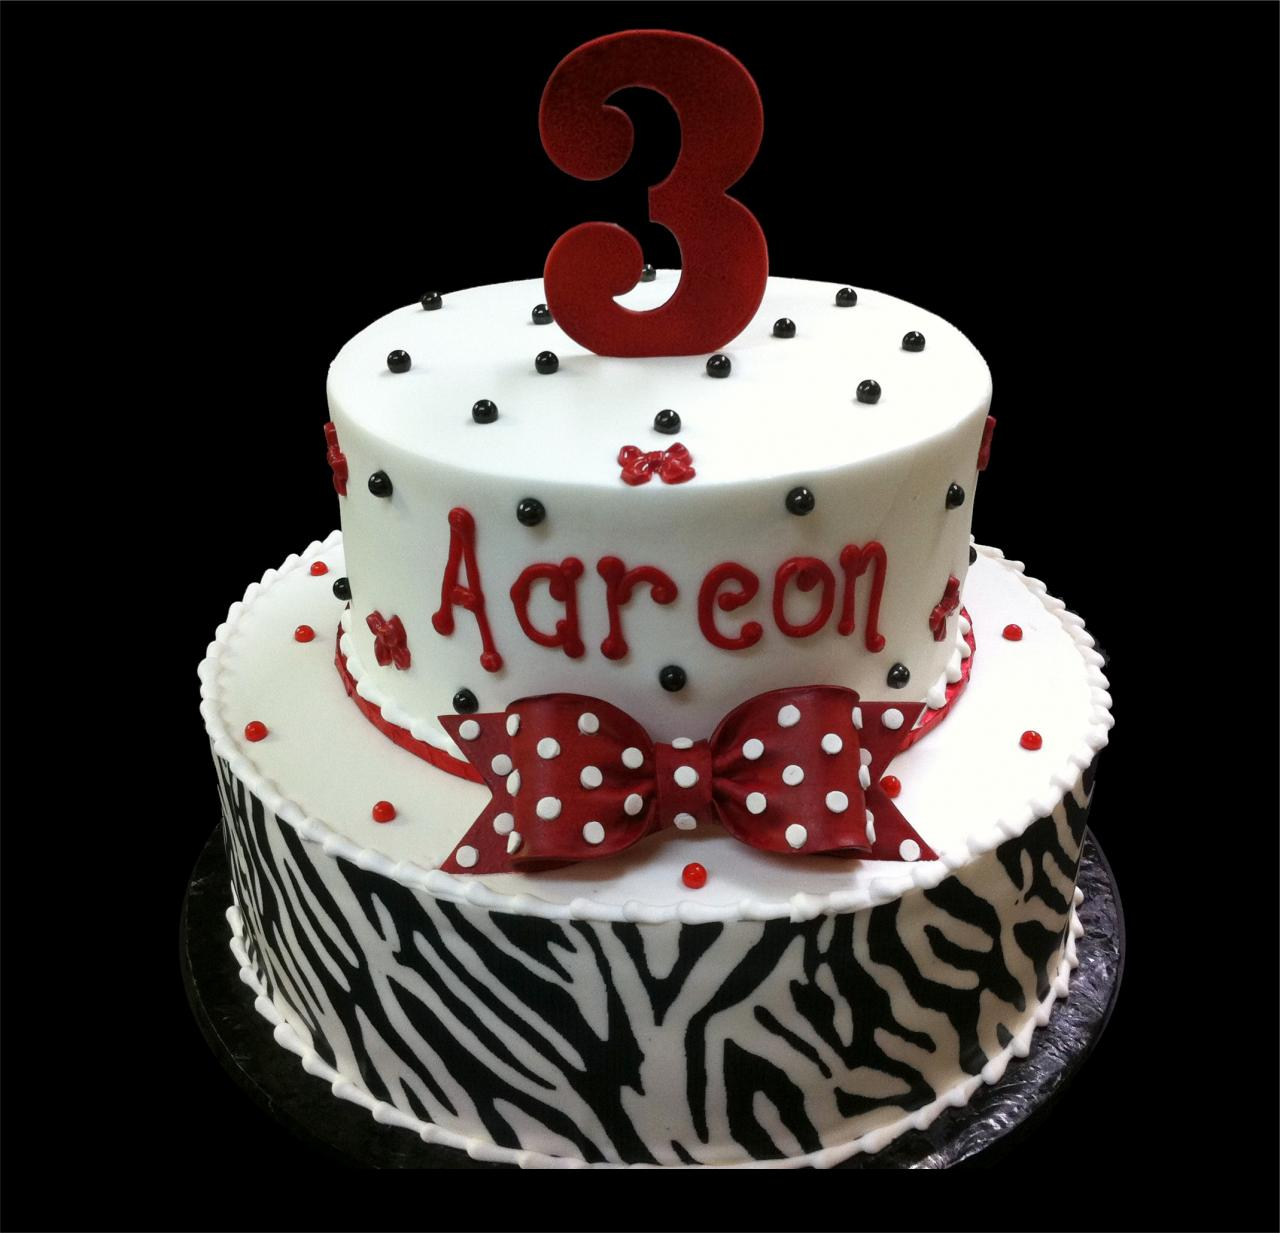 3rd Birthday Cake White Buttercream Iced 2 Round Tiers Decorated With Bows Dots